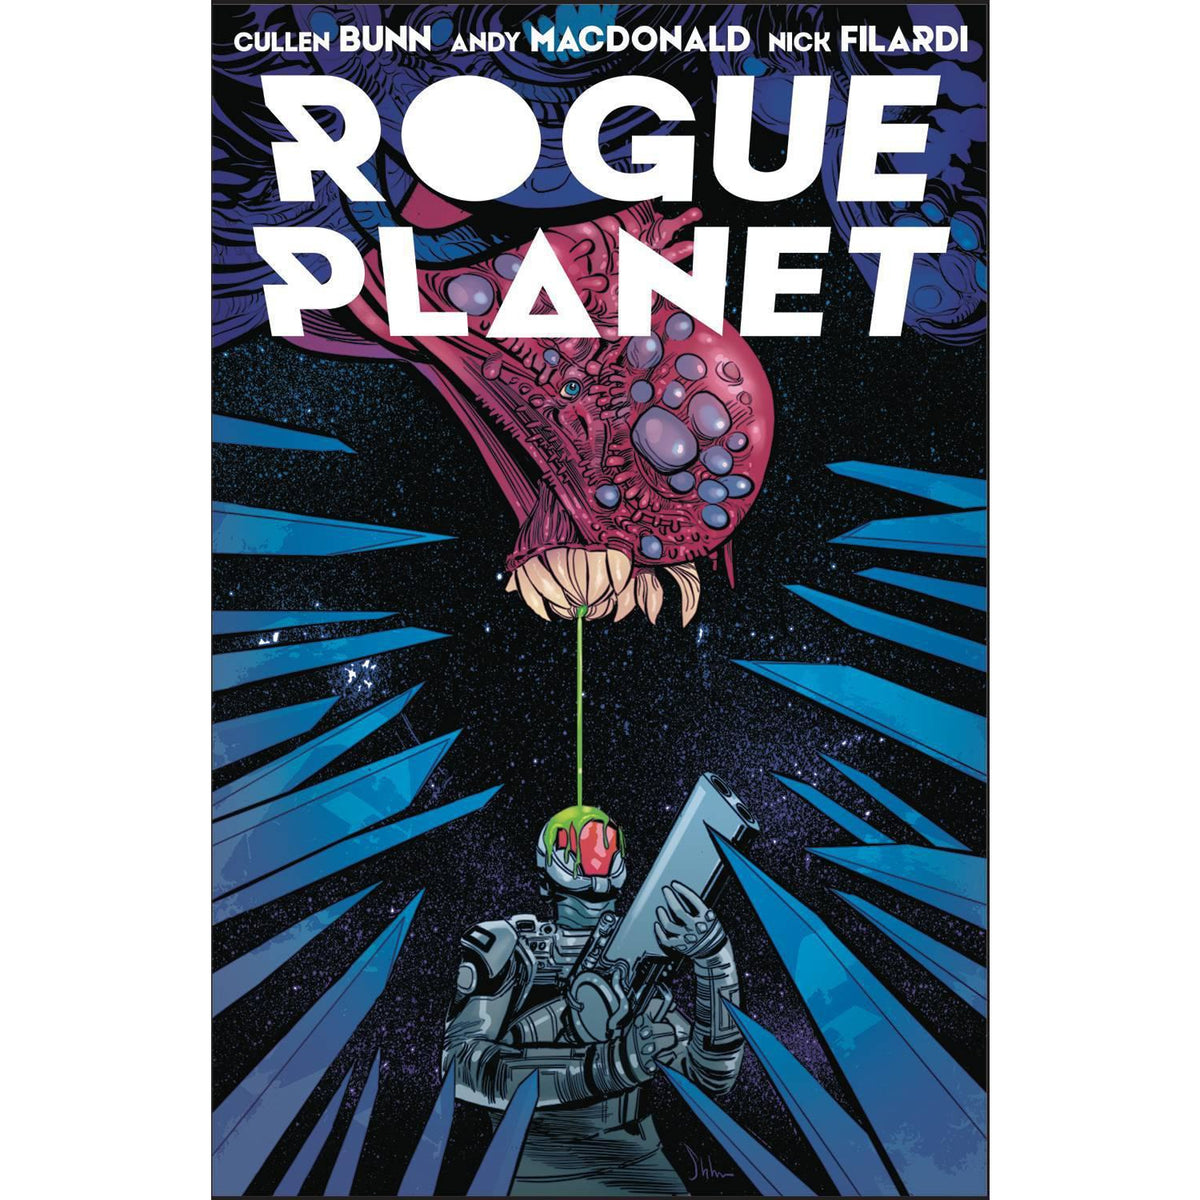 ROGUE PLANET #1 COVER B STRAHM